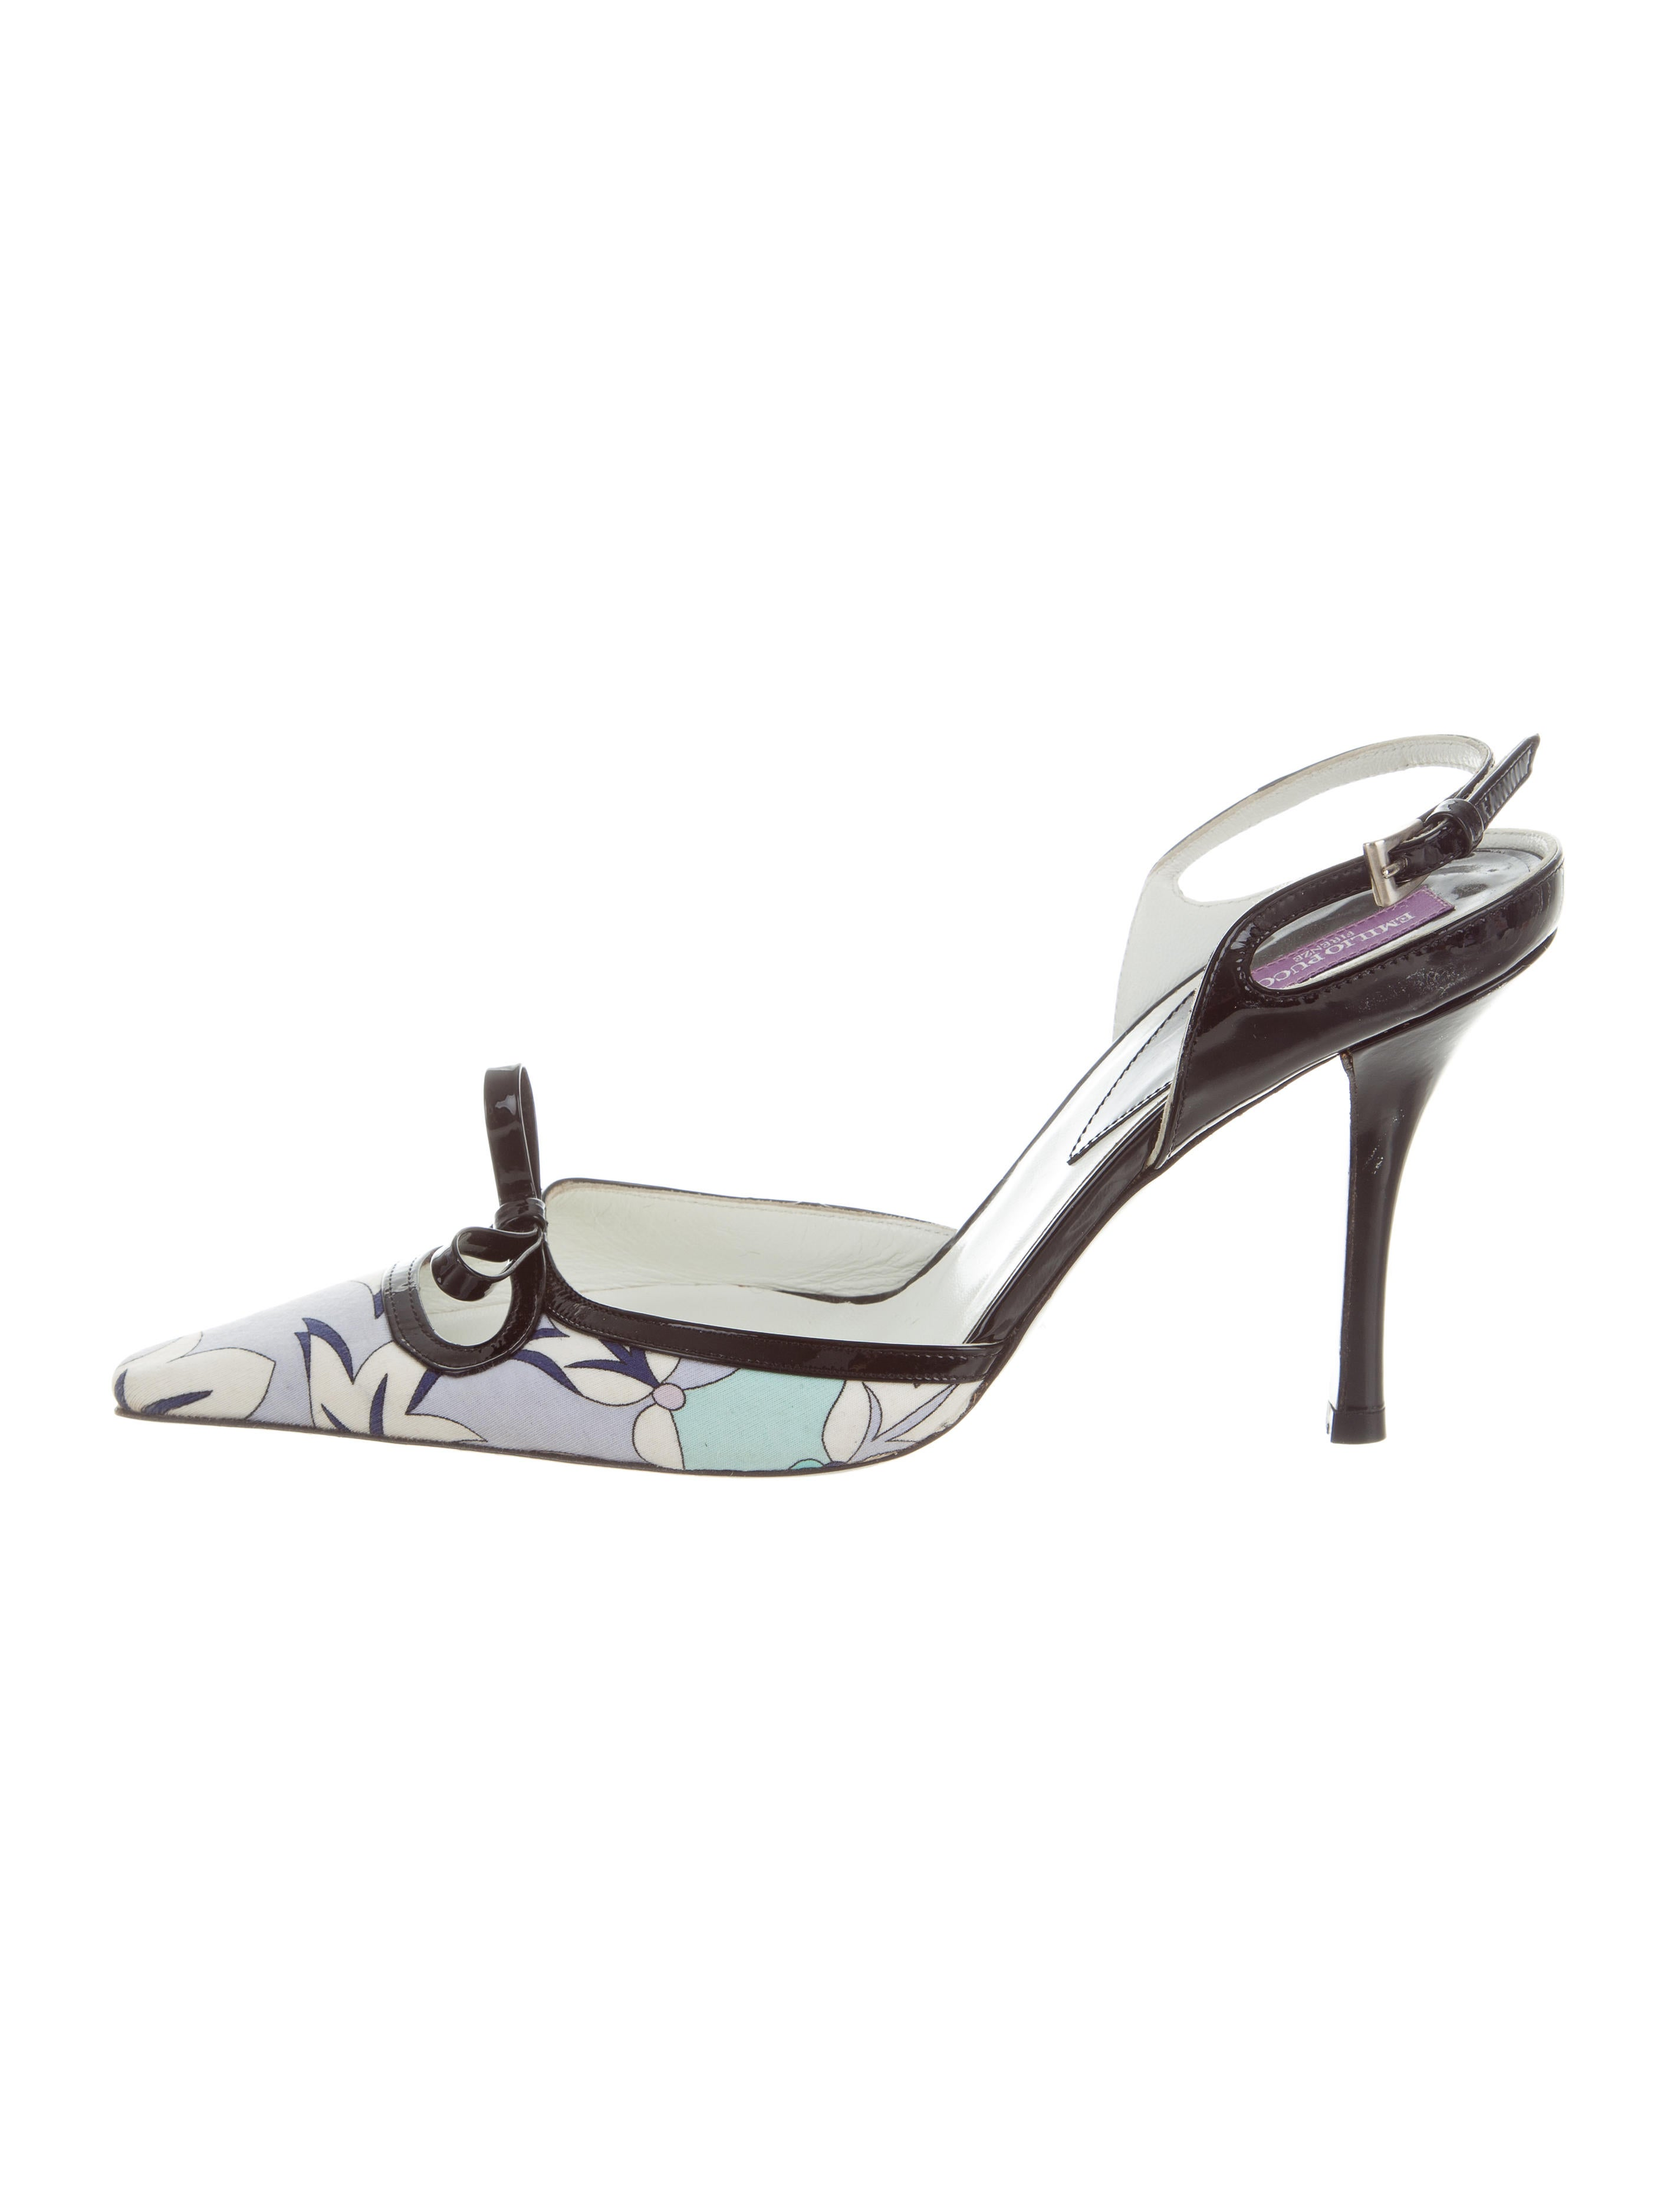 Emilio Pucci Patent Leather Pointed-Toe Pumps cheap discount clearance best prices EaxD1pKF